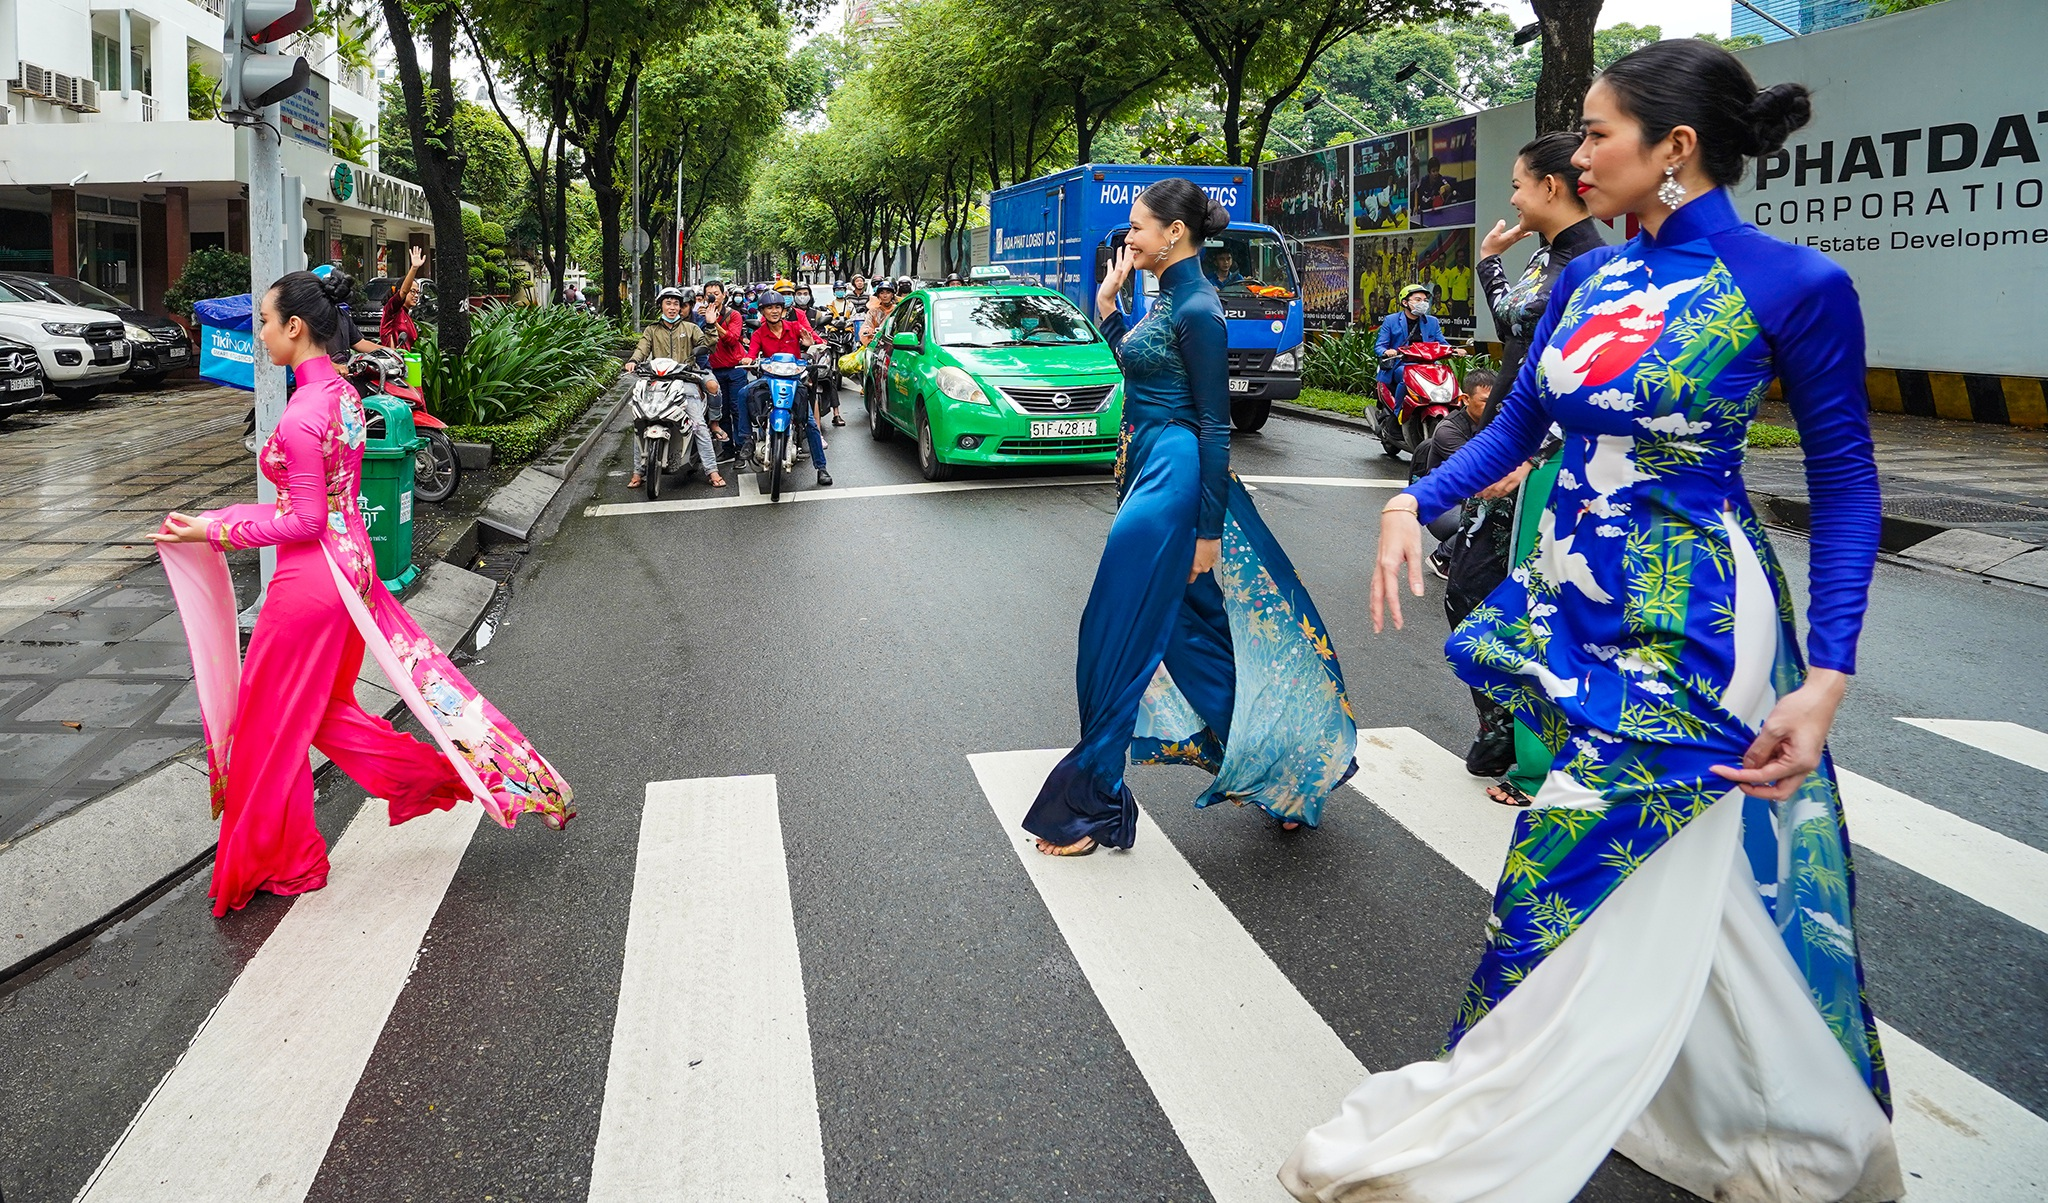 Streets, tourist attractions ... in Ho Chi Minh City turned into ao dai runway - 2